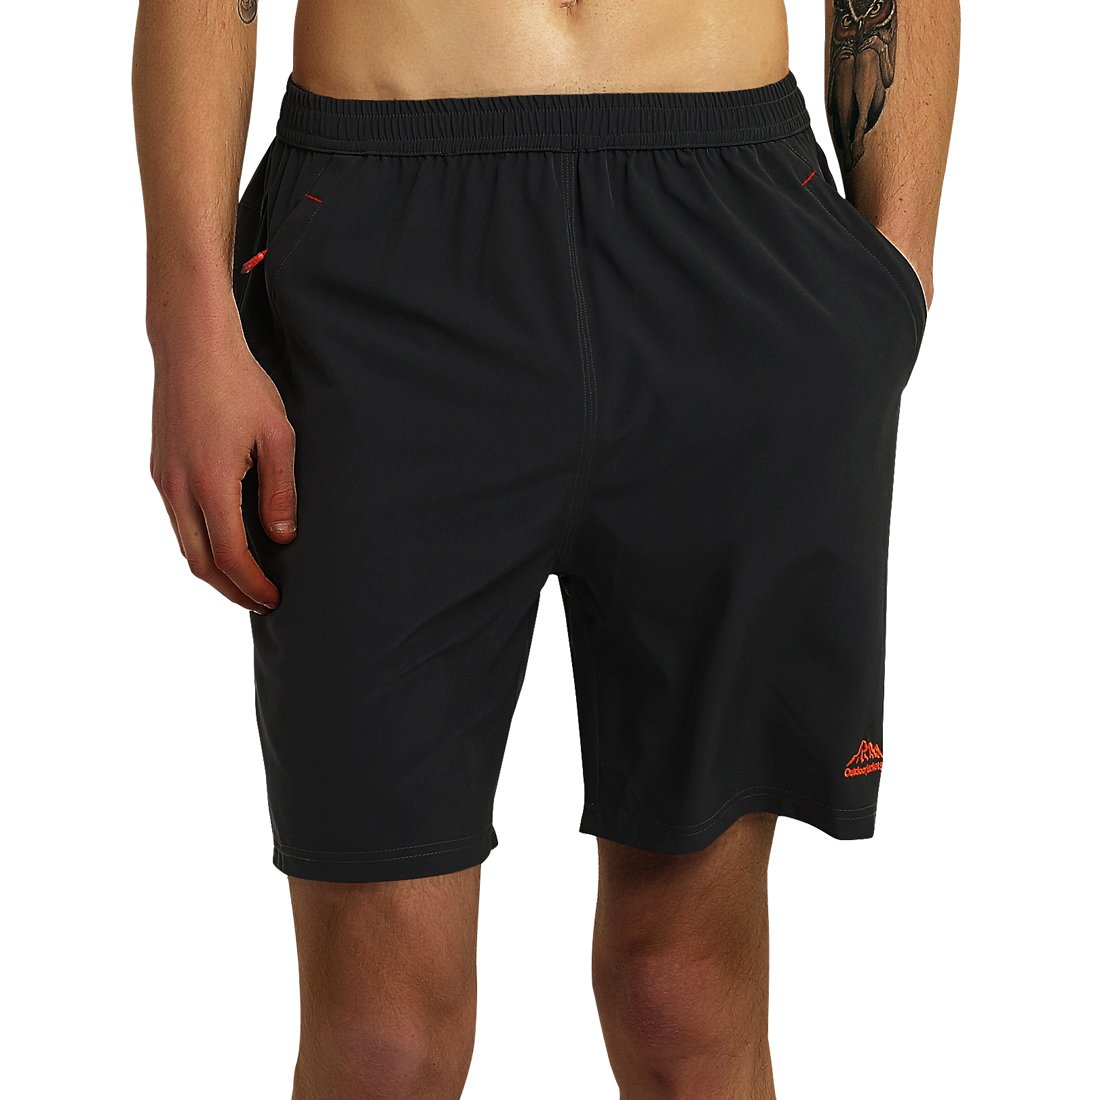 SuperArt Men\'s Gym Shorts Outdoor Sports Running Beach Shorts Lightweight Quick Dry Shorts Reflective with Zipper Pockets (Style 3 Black, Medium)